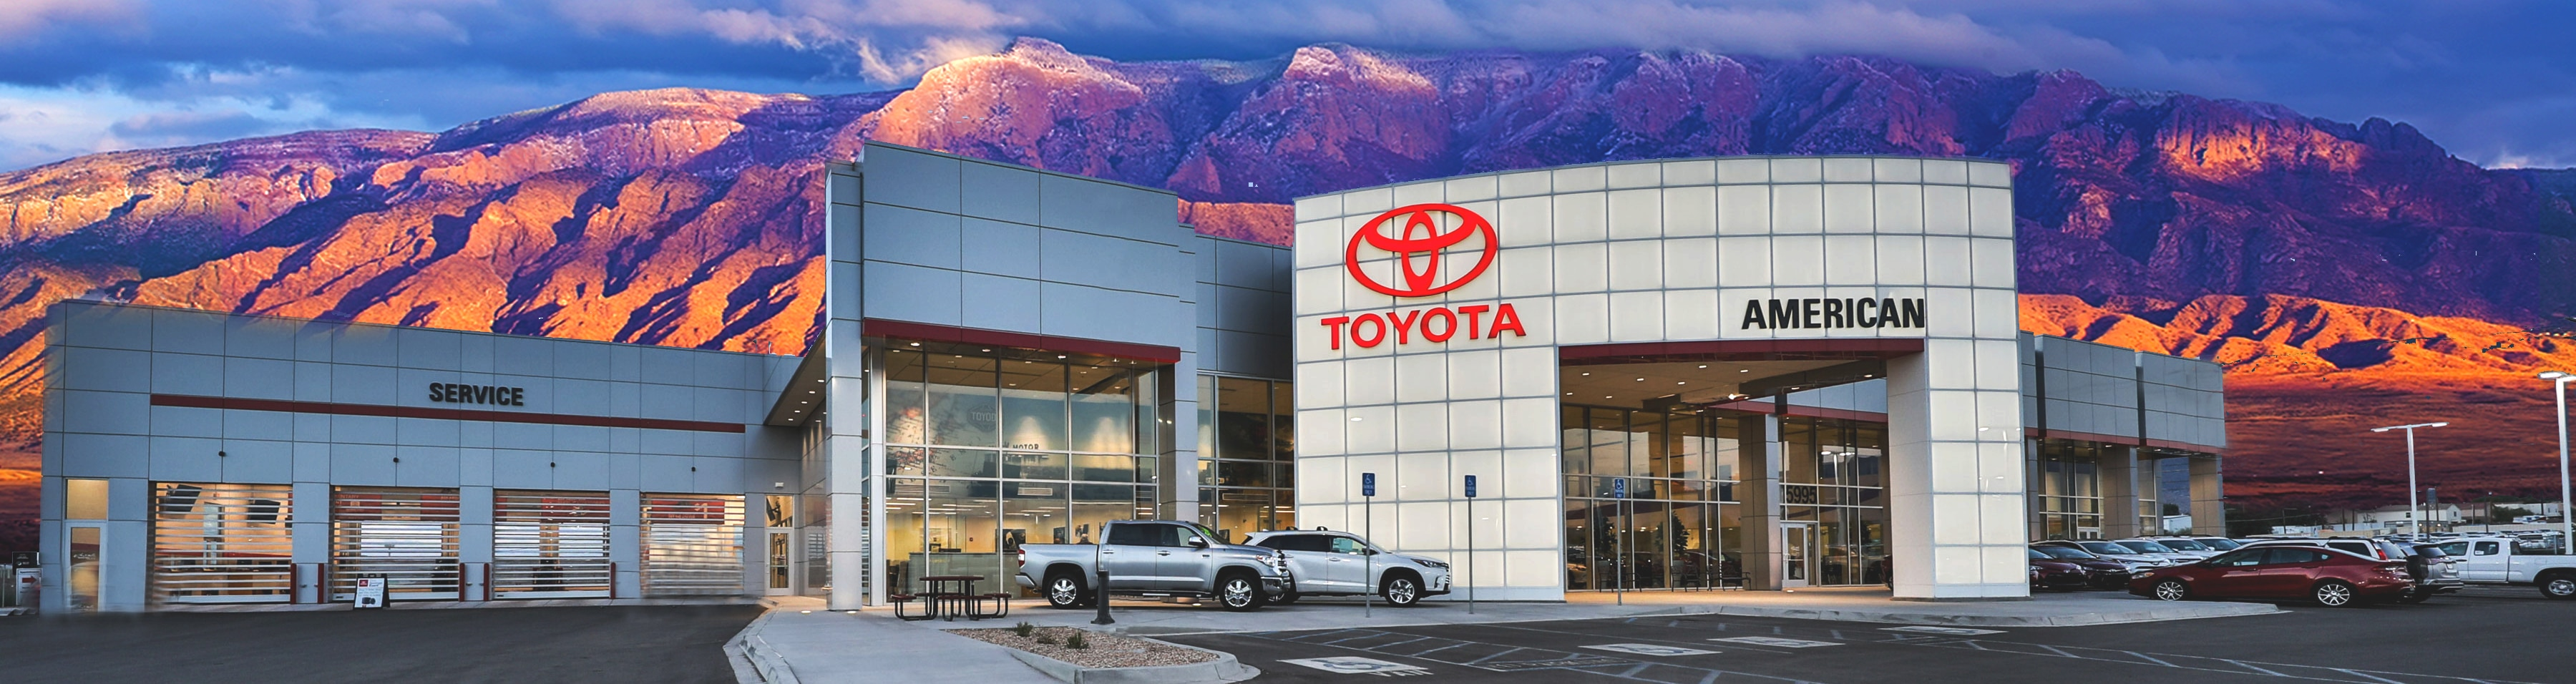 American Toyota Dealership